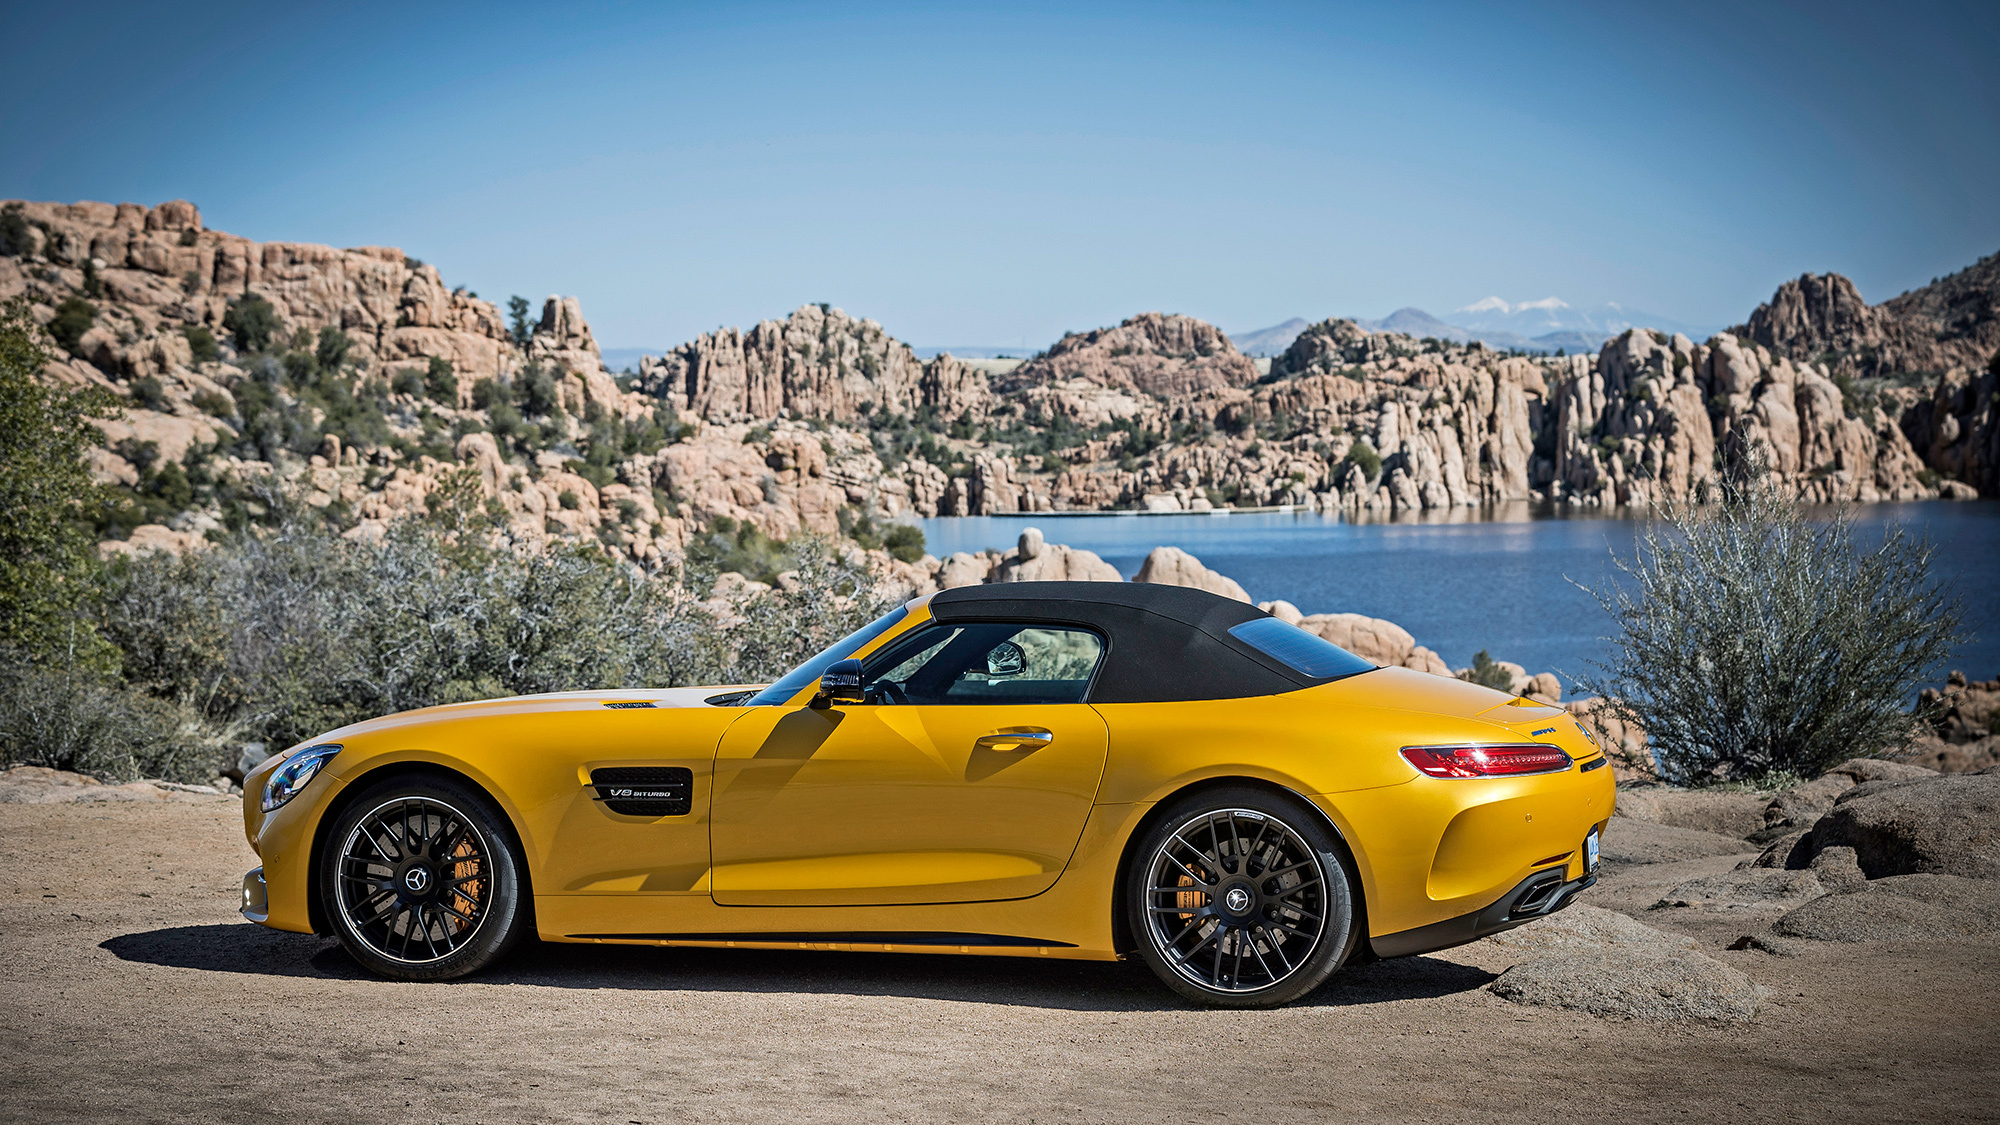 Mercedes-AMG GT C Roadster Wallpapers Images Photos